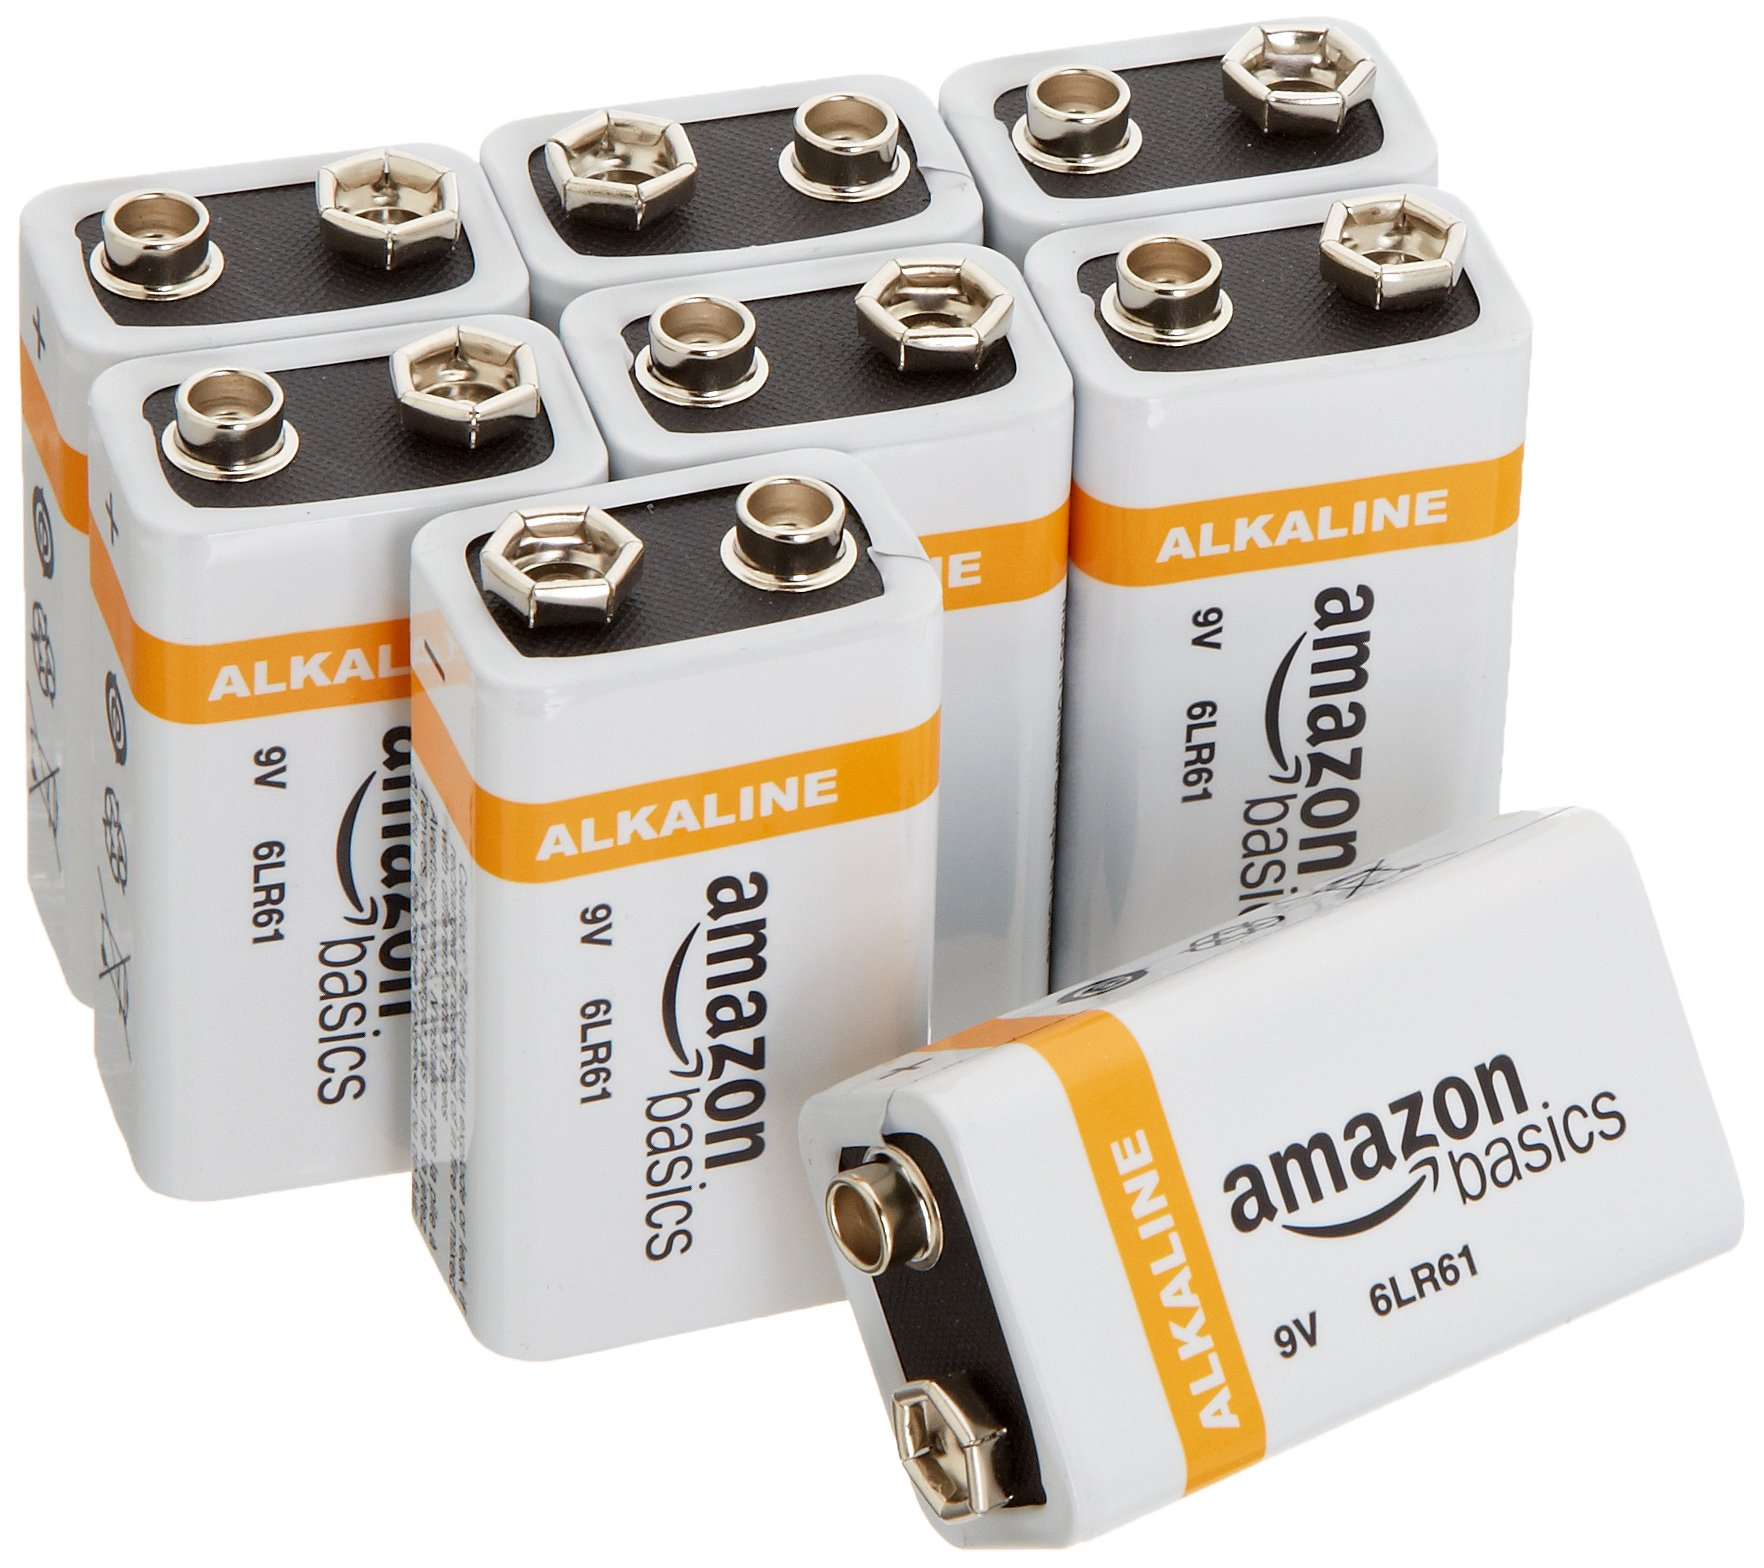 AmazonBasics 9 Volt Everyday Alkaline Batteries (8-Pack) product image